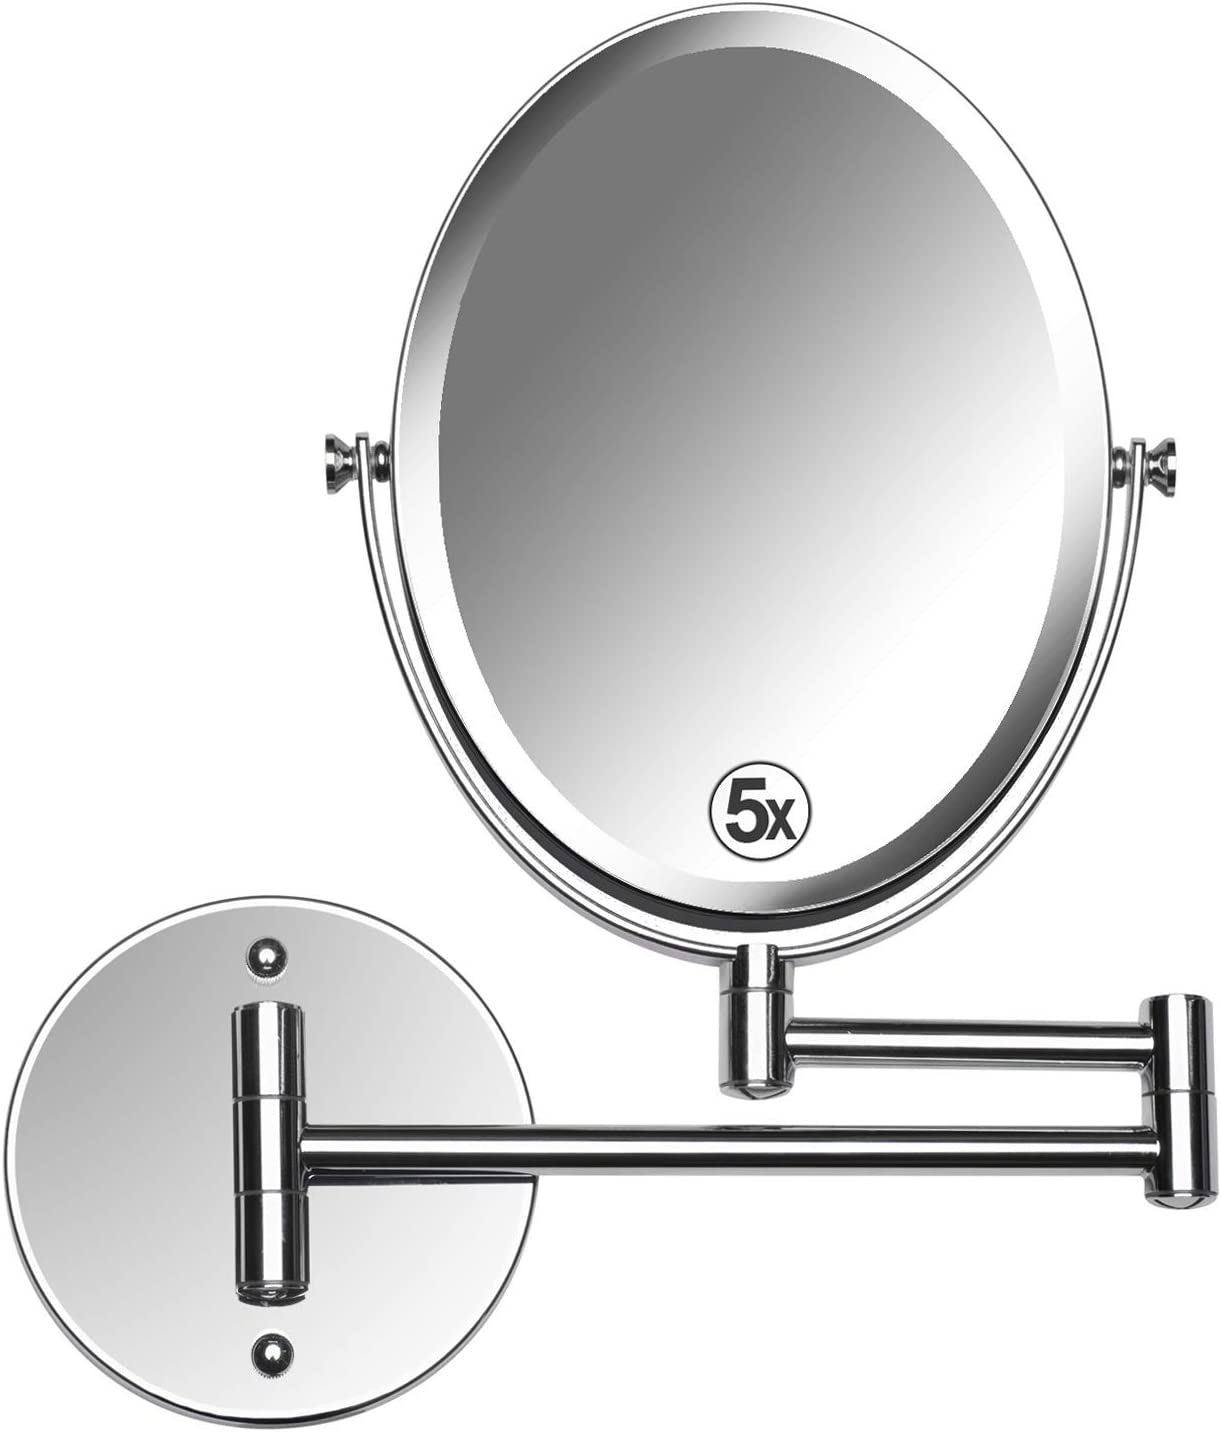 MIRRORVANA Oval Wall Mount Bathroom low-pricing Dou 5X Mirror cheap 1X Magnifying